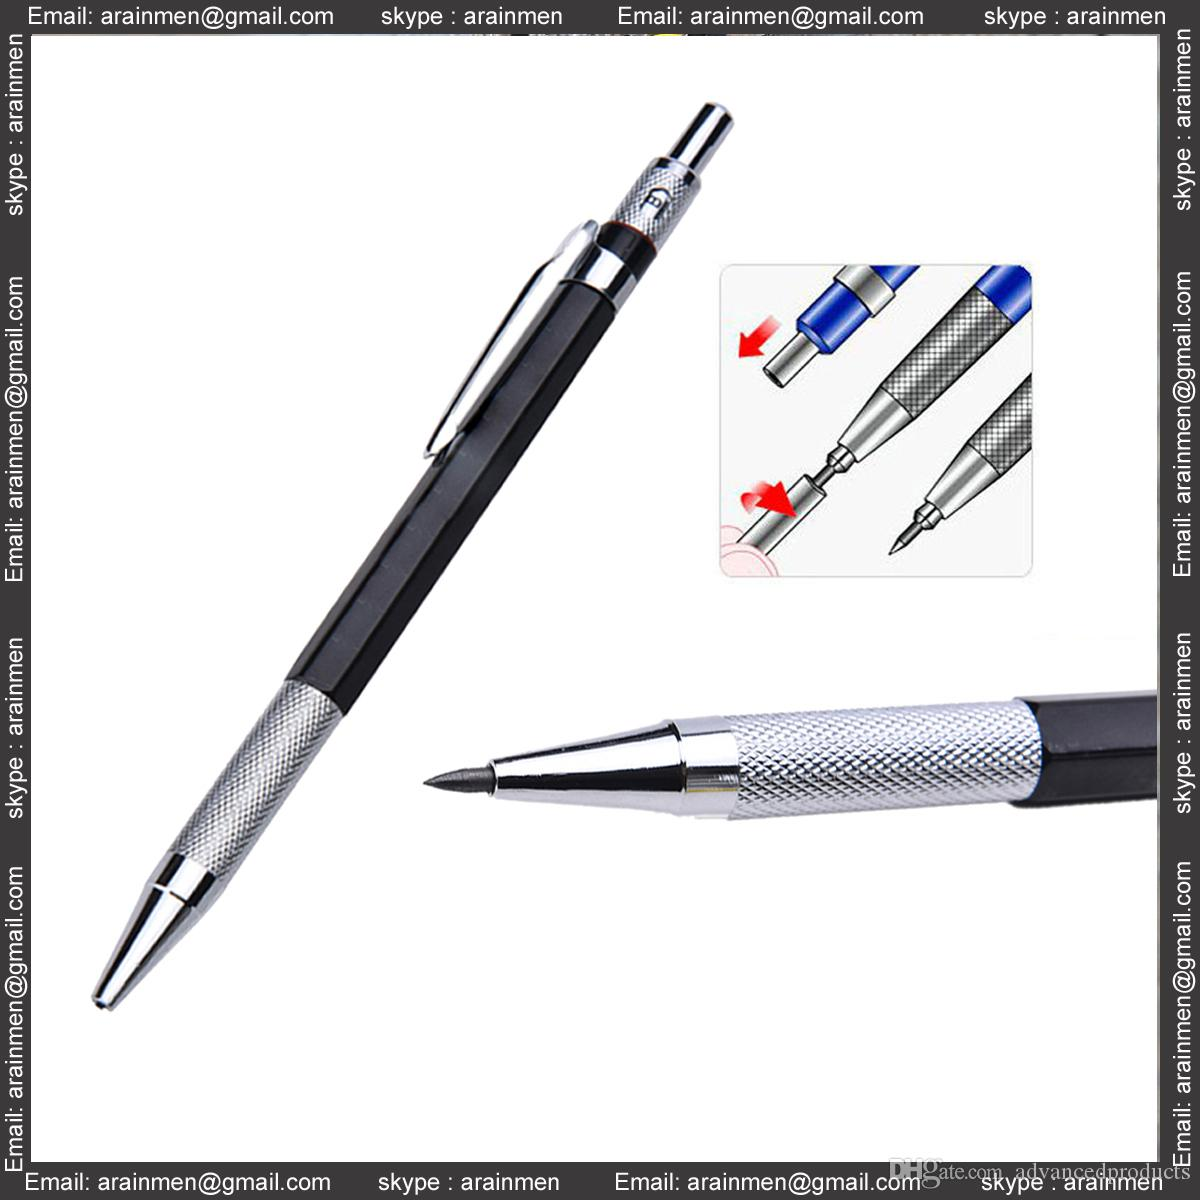 2019 propelling pencil for sketching school office stationery supplies 2mm lead holder automatic draughting mechanical drafting pencil from advancedproducts